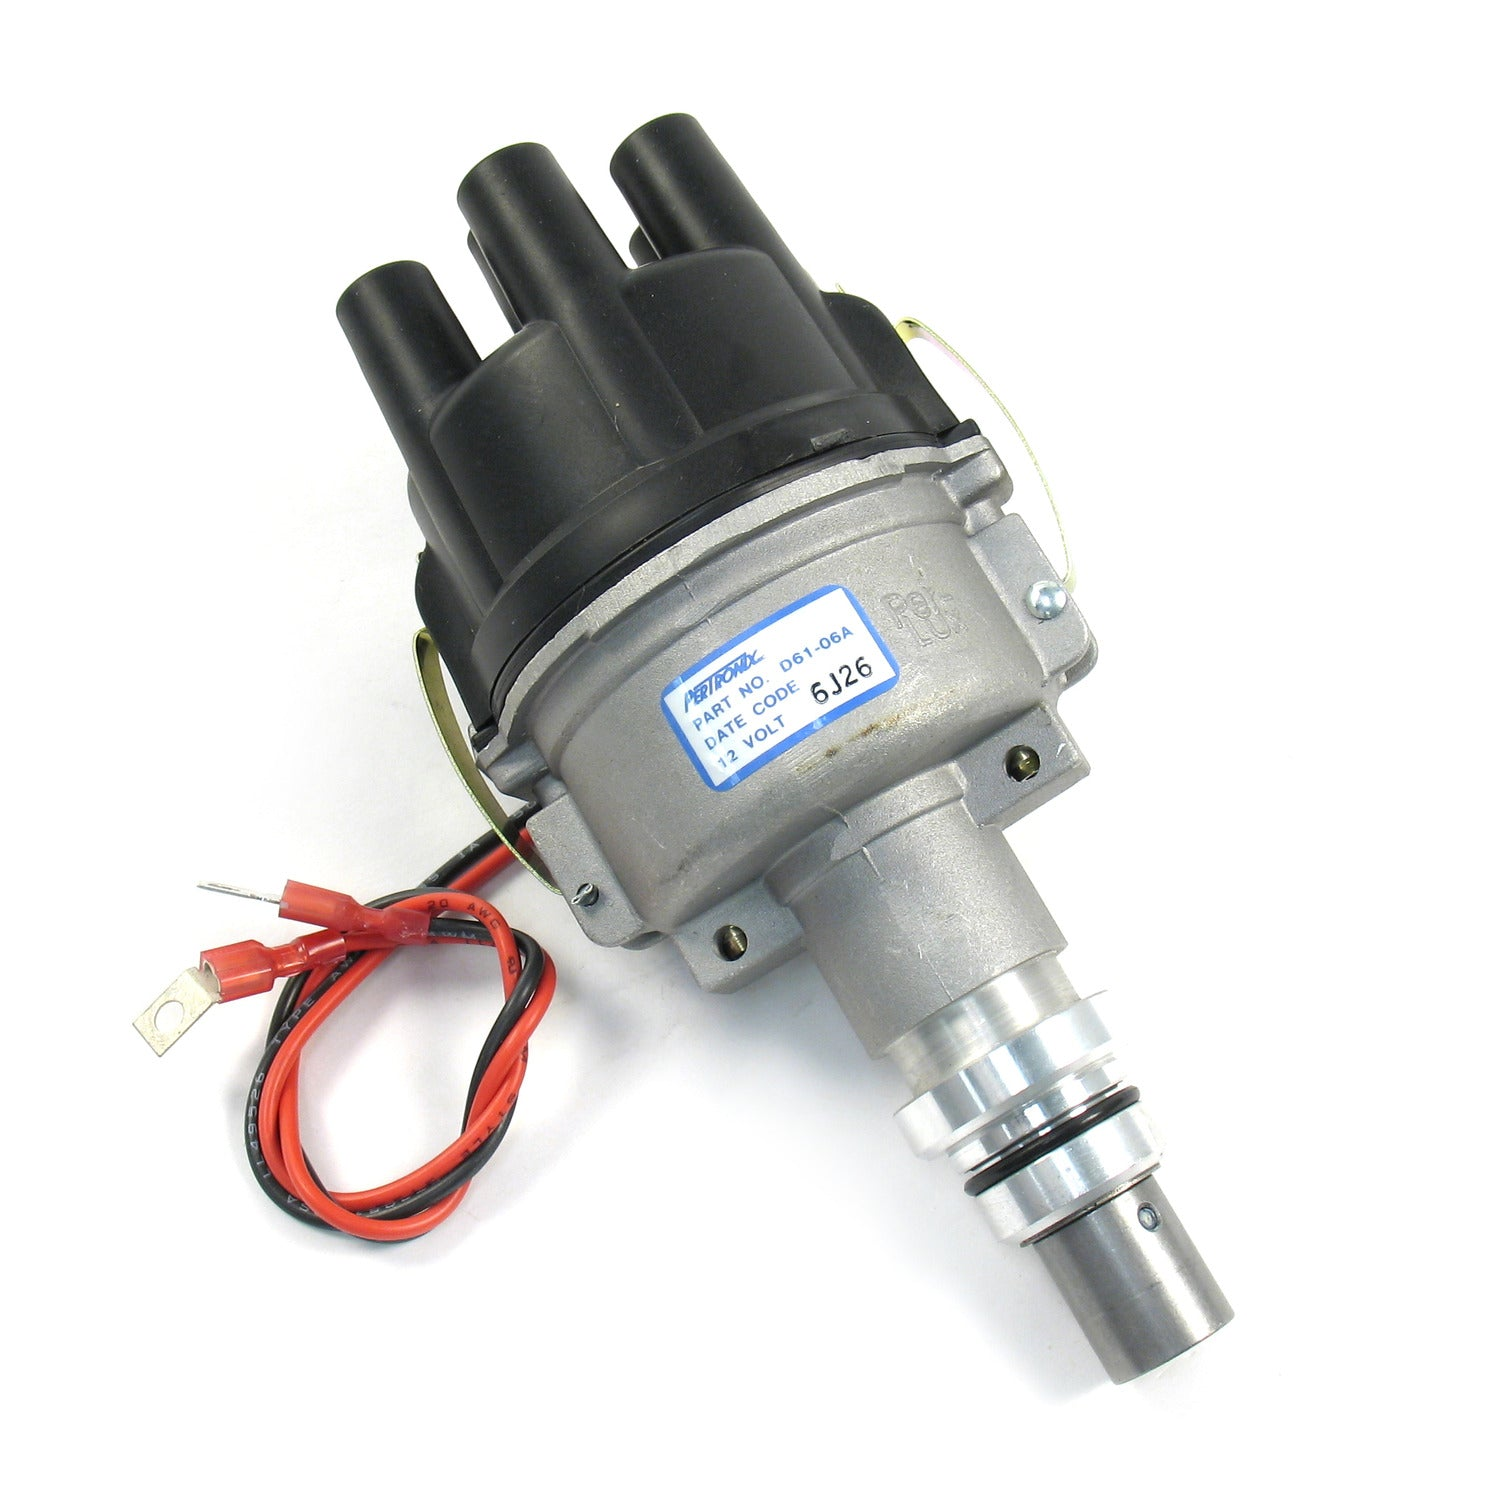 PerTronix D61-06A Distributor Industrial Continental 6 cyl